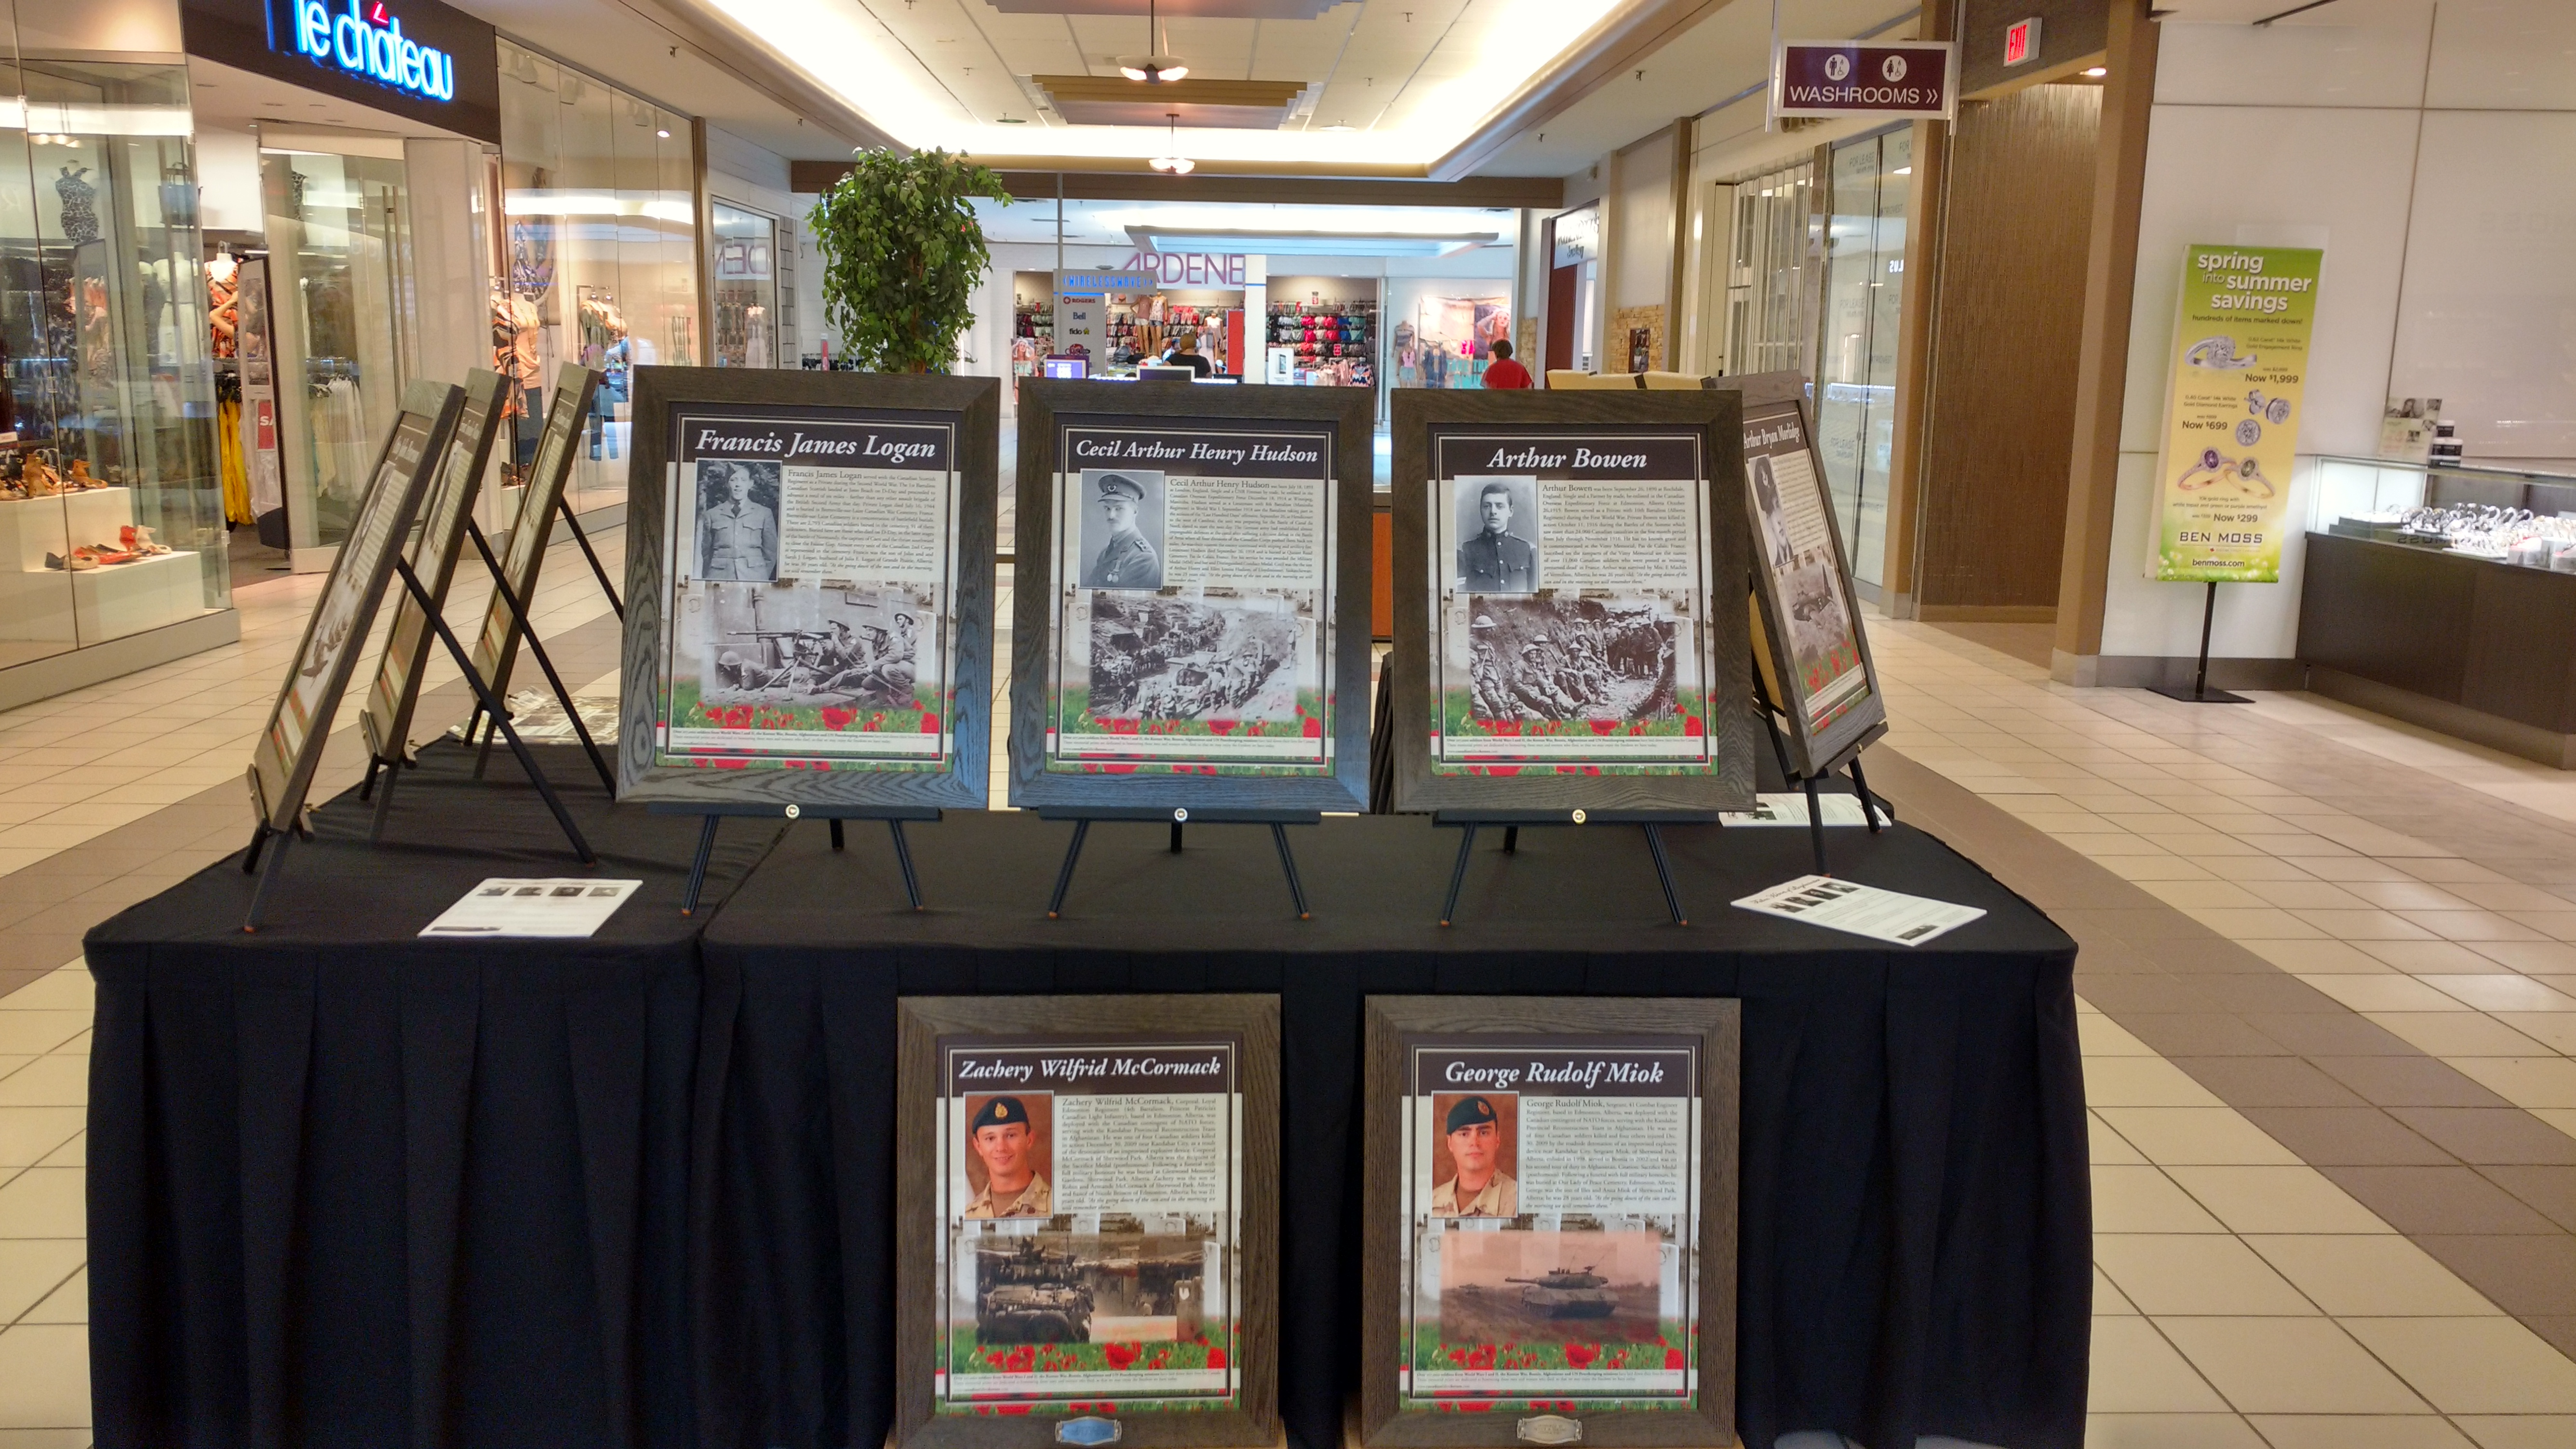 Remembrance In Action: Portrait Display at LloydMall, Lloydminster